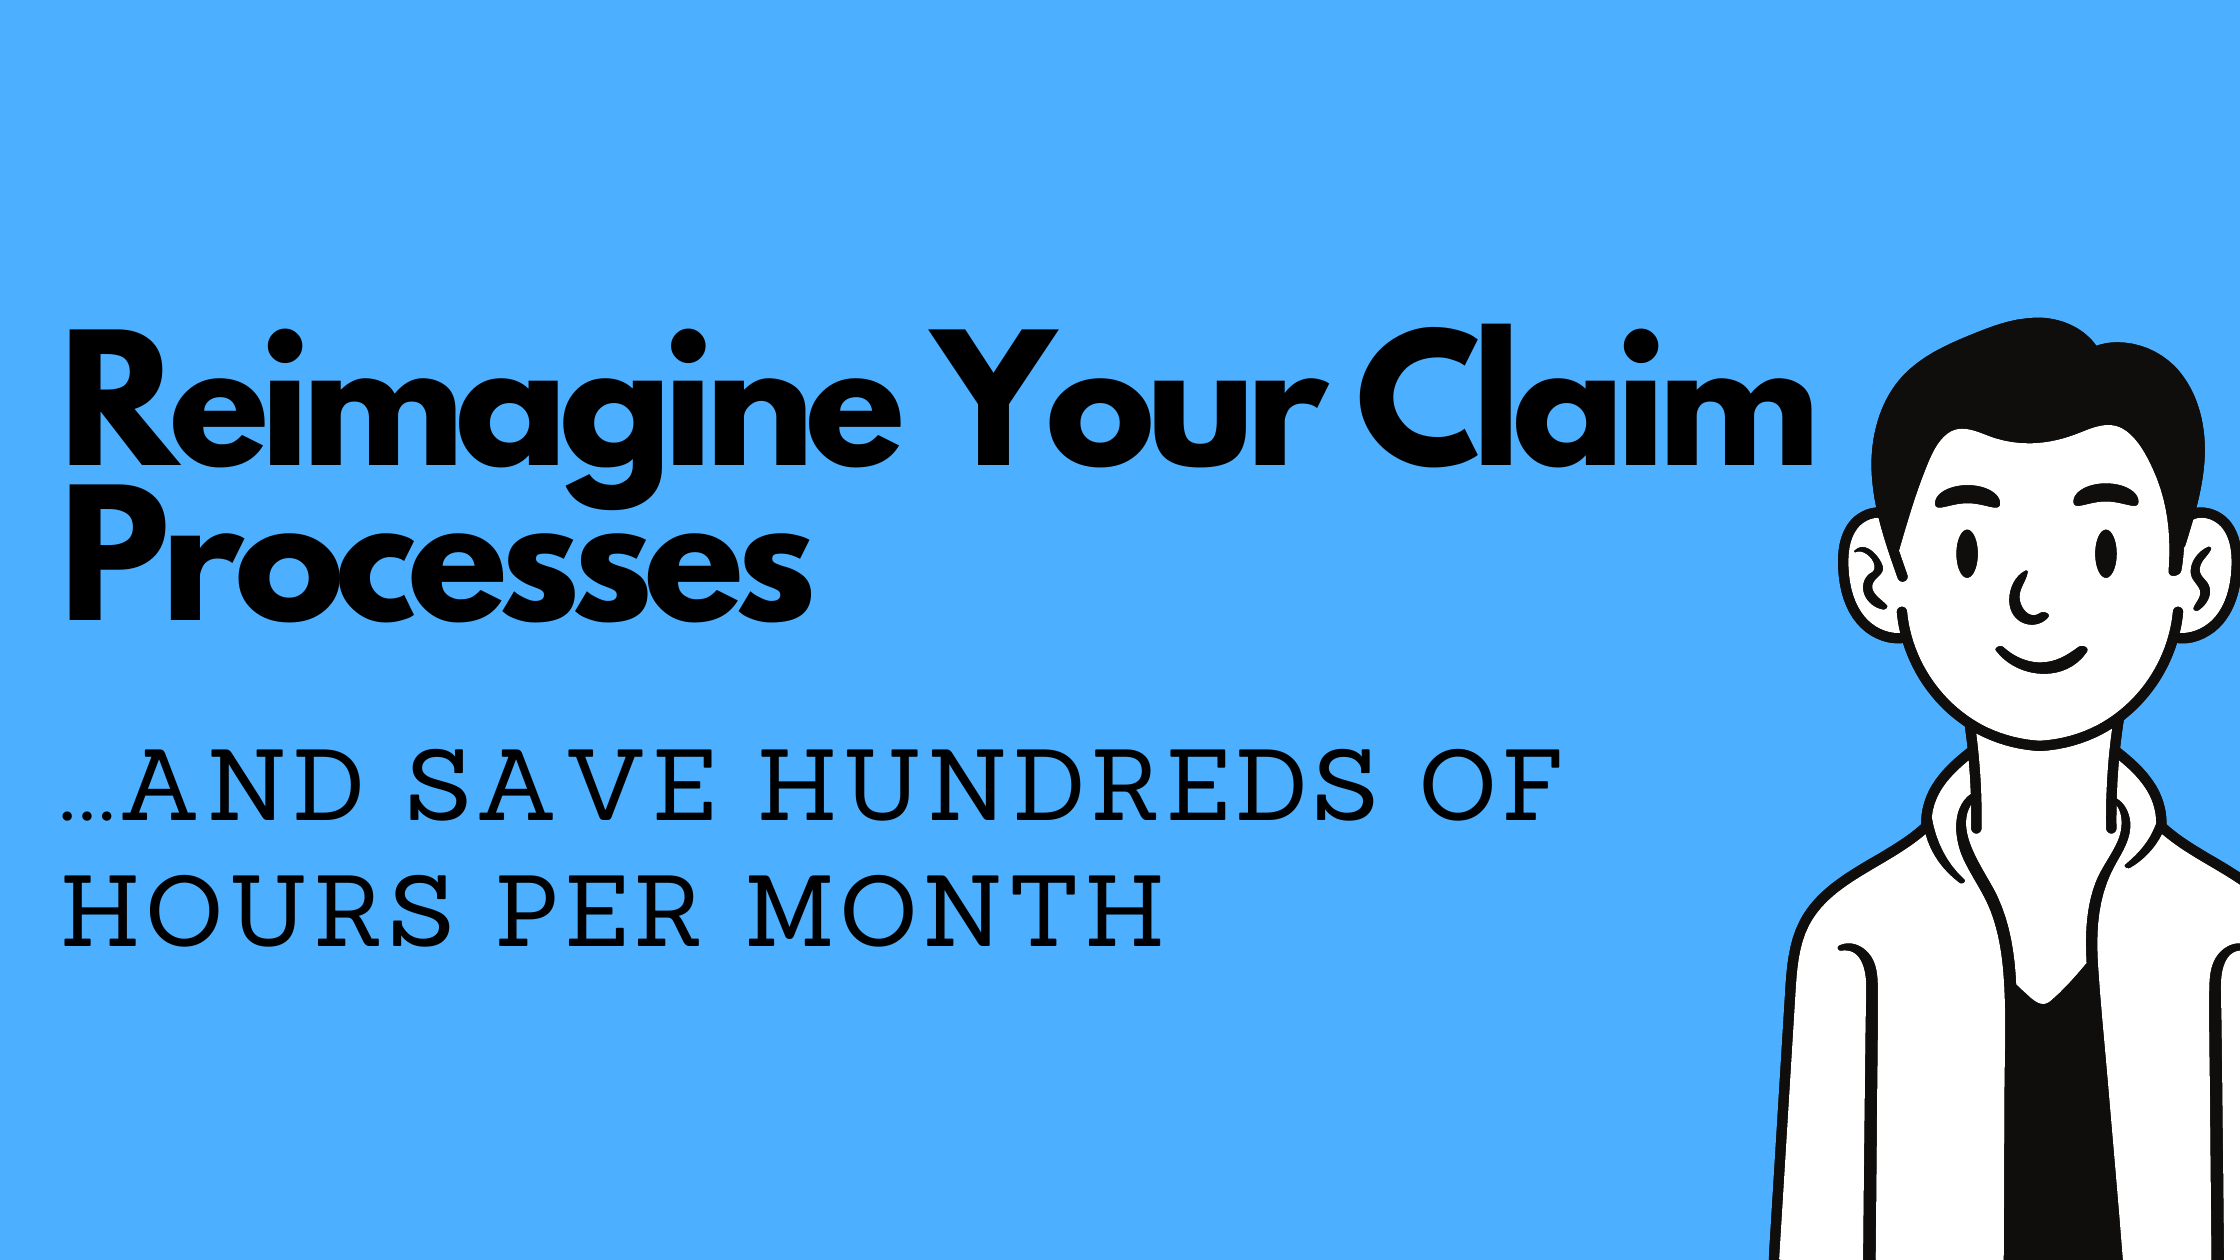 Reimagine Your Claim Processes